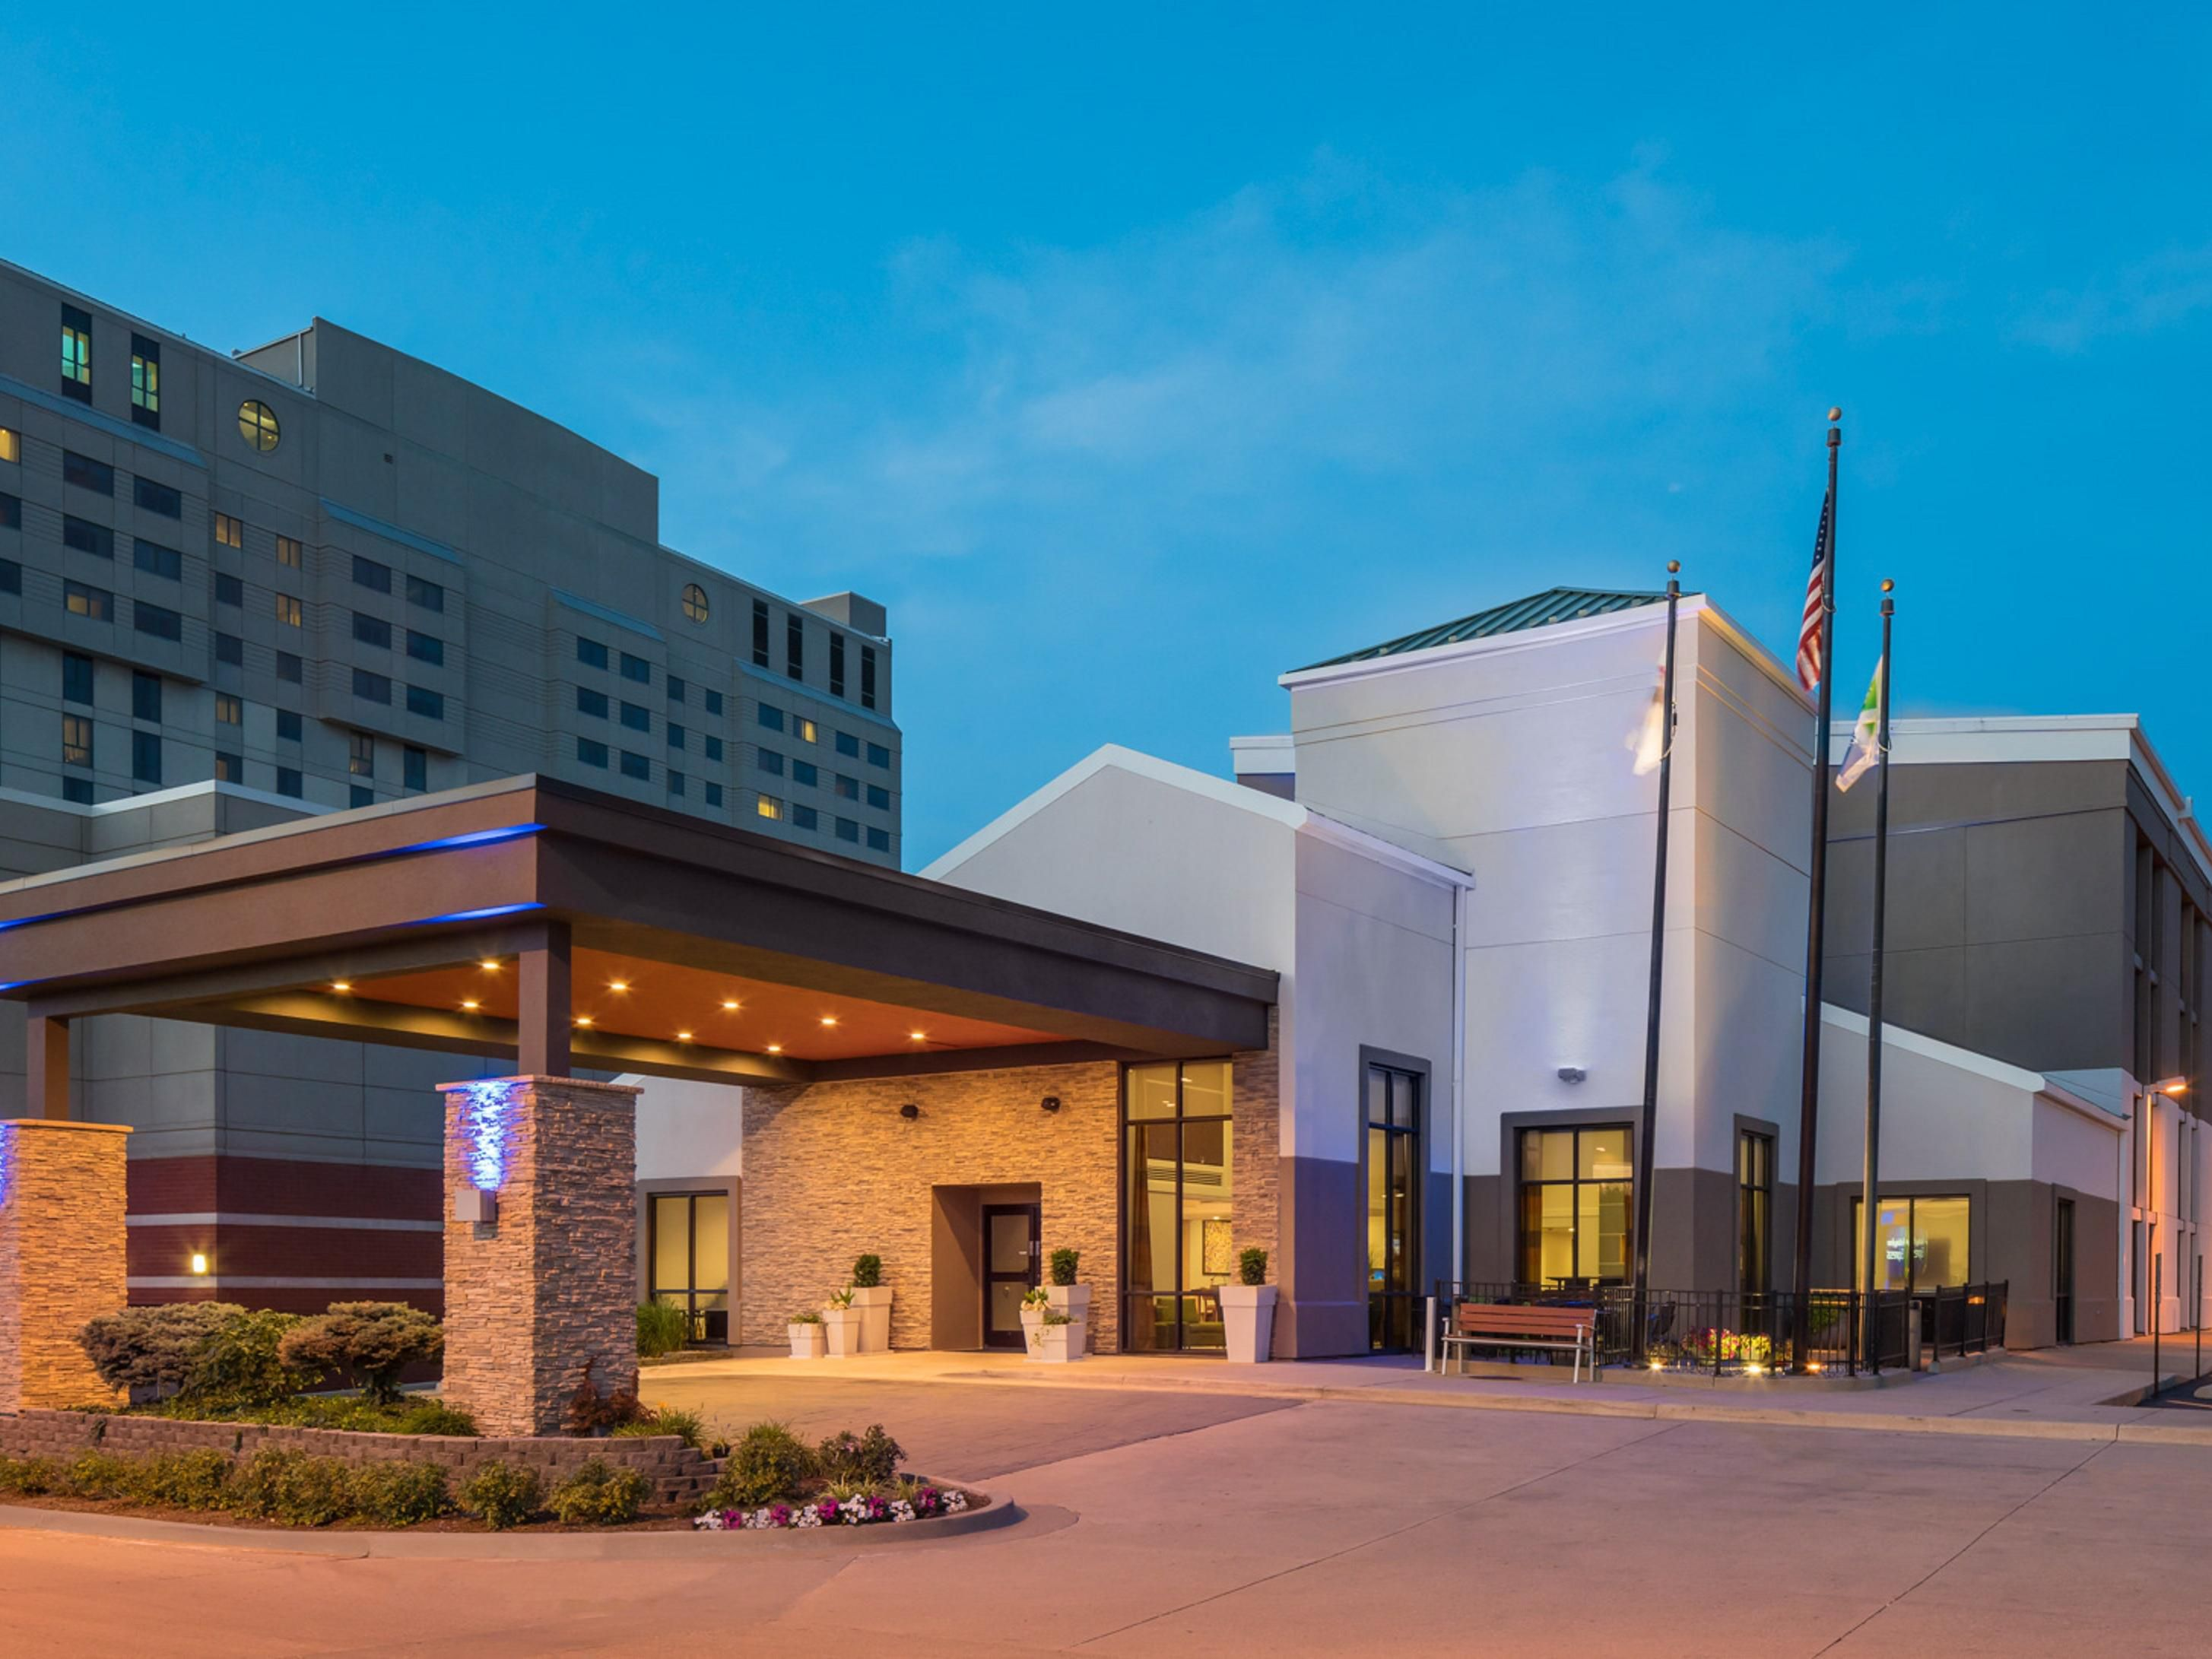 residence il family lincoln hotels inn img in lobby springfield hotel marriott illinois best by south